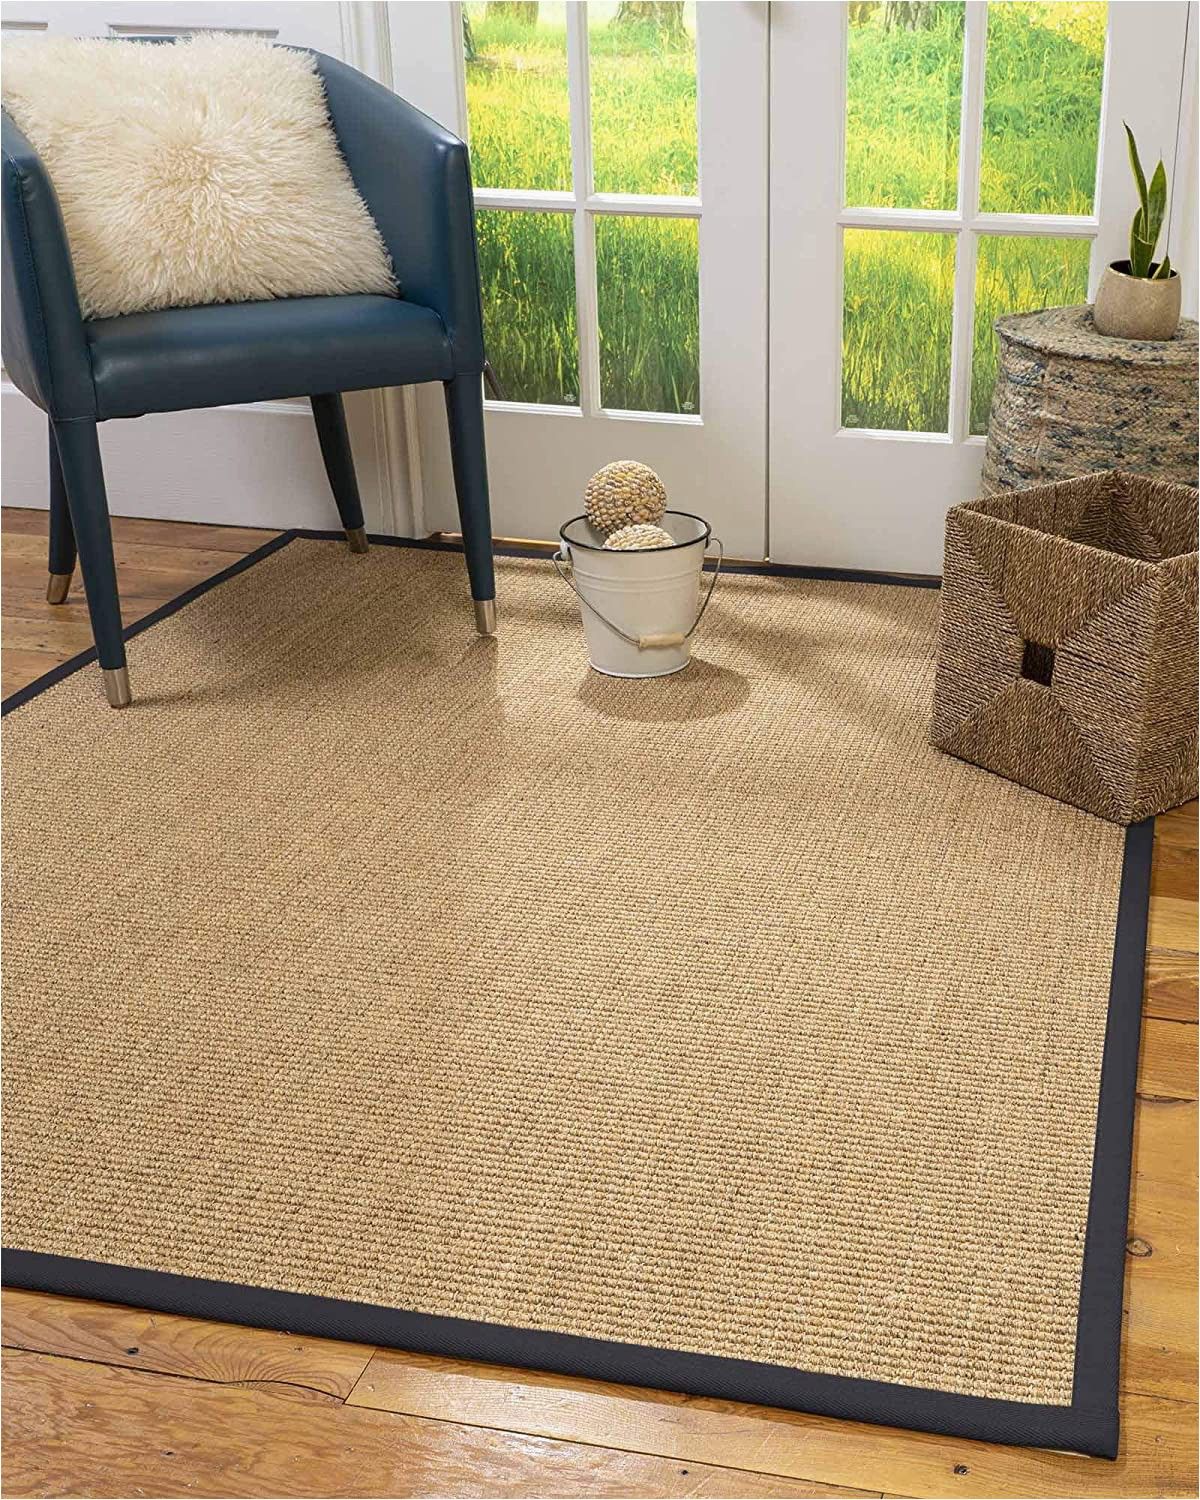 Sisal Rug with Blue Border Naturalarearugs Natural Fiber Handmade Studio Gold Multi Sisal Rug 2 X 3 Midnight Blue Border